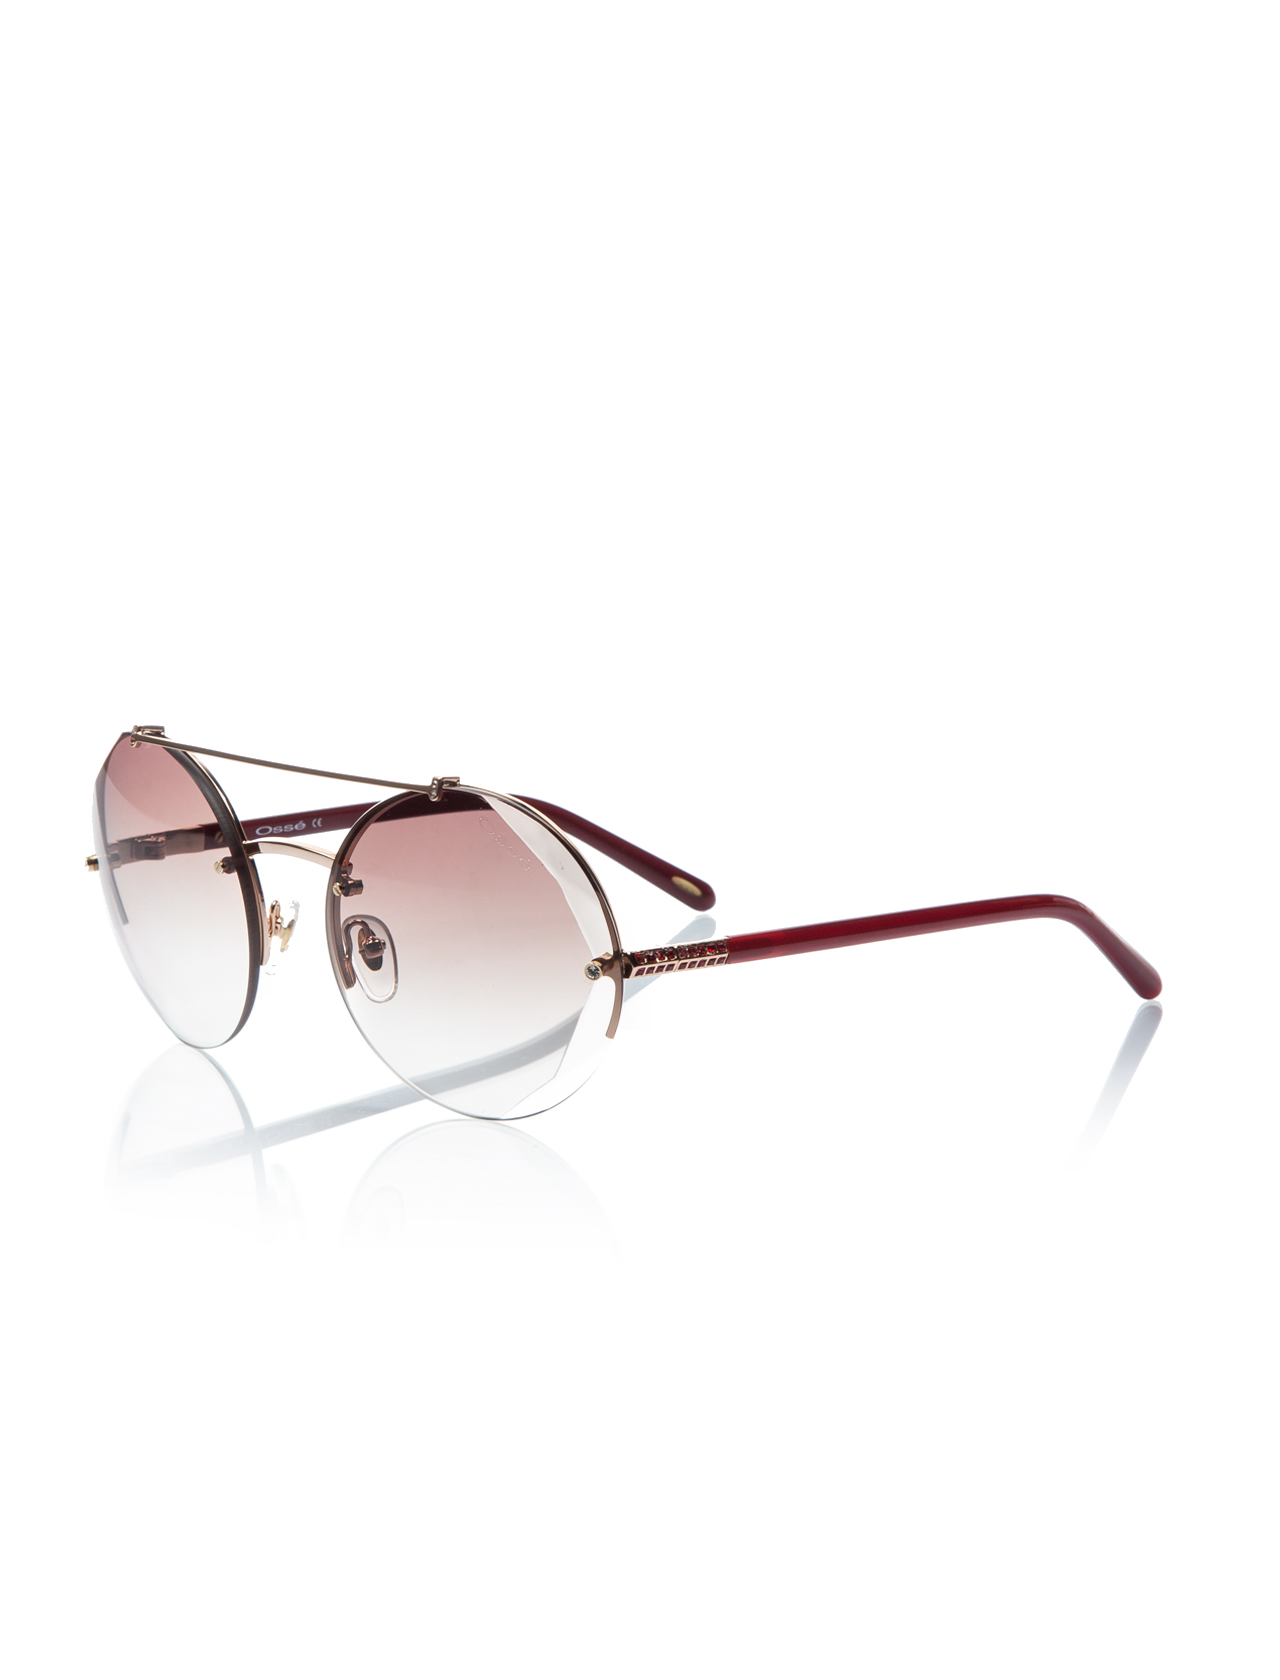 Women's sunglasses os 2583 04 metal gold polycarbonate round round 60-20-135 osse